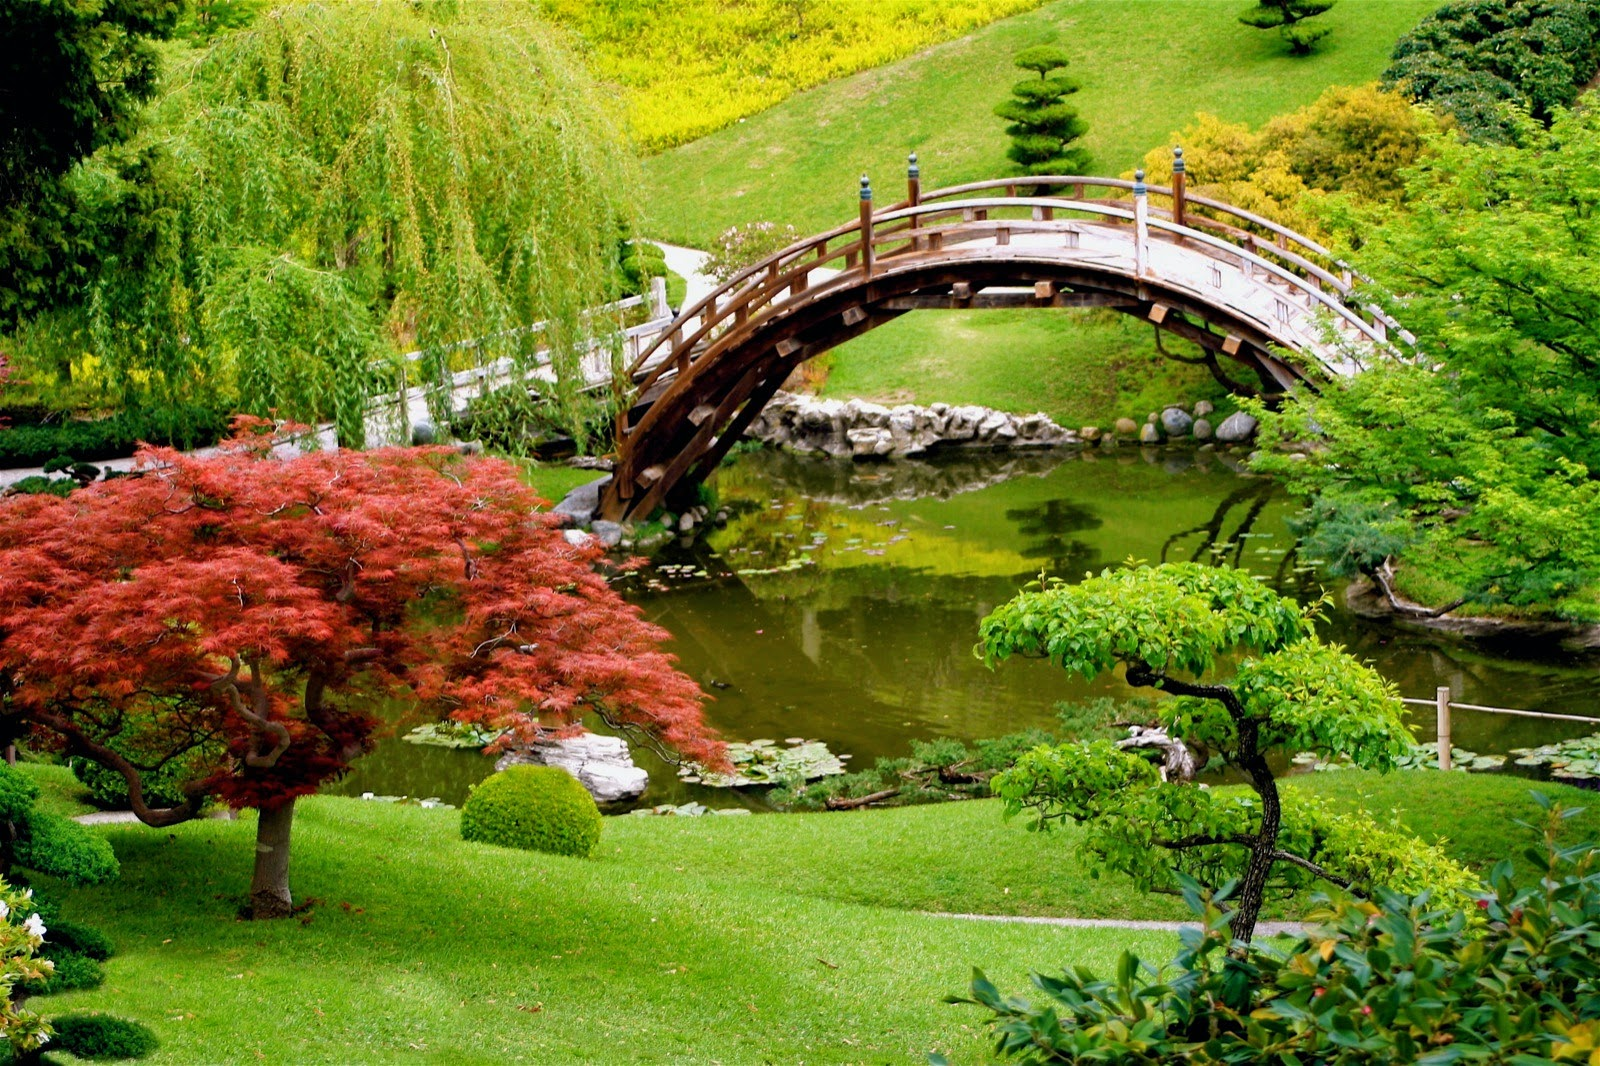 Tranquility Bridge in Tokoyo